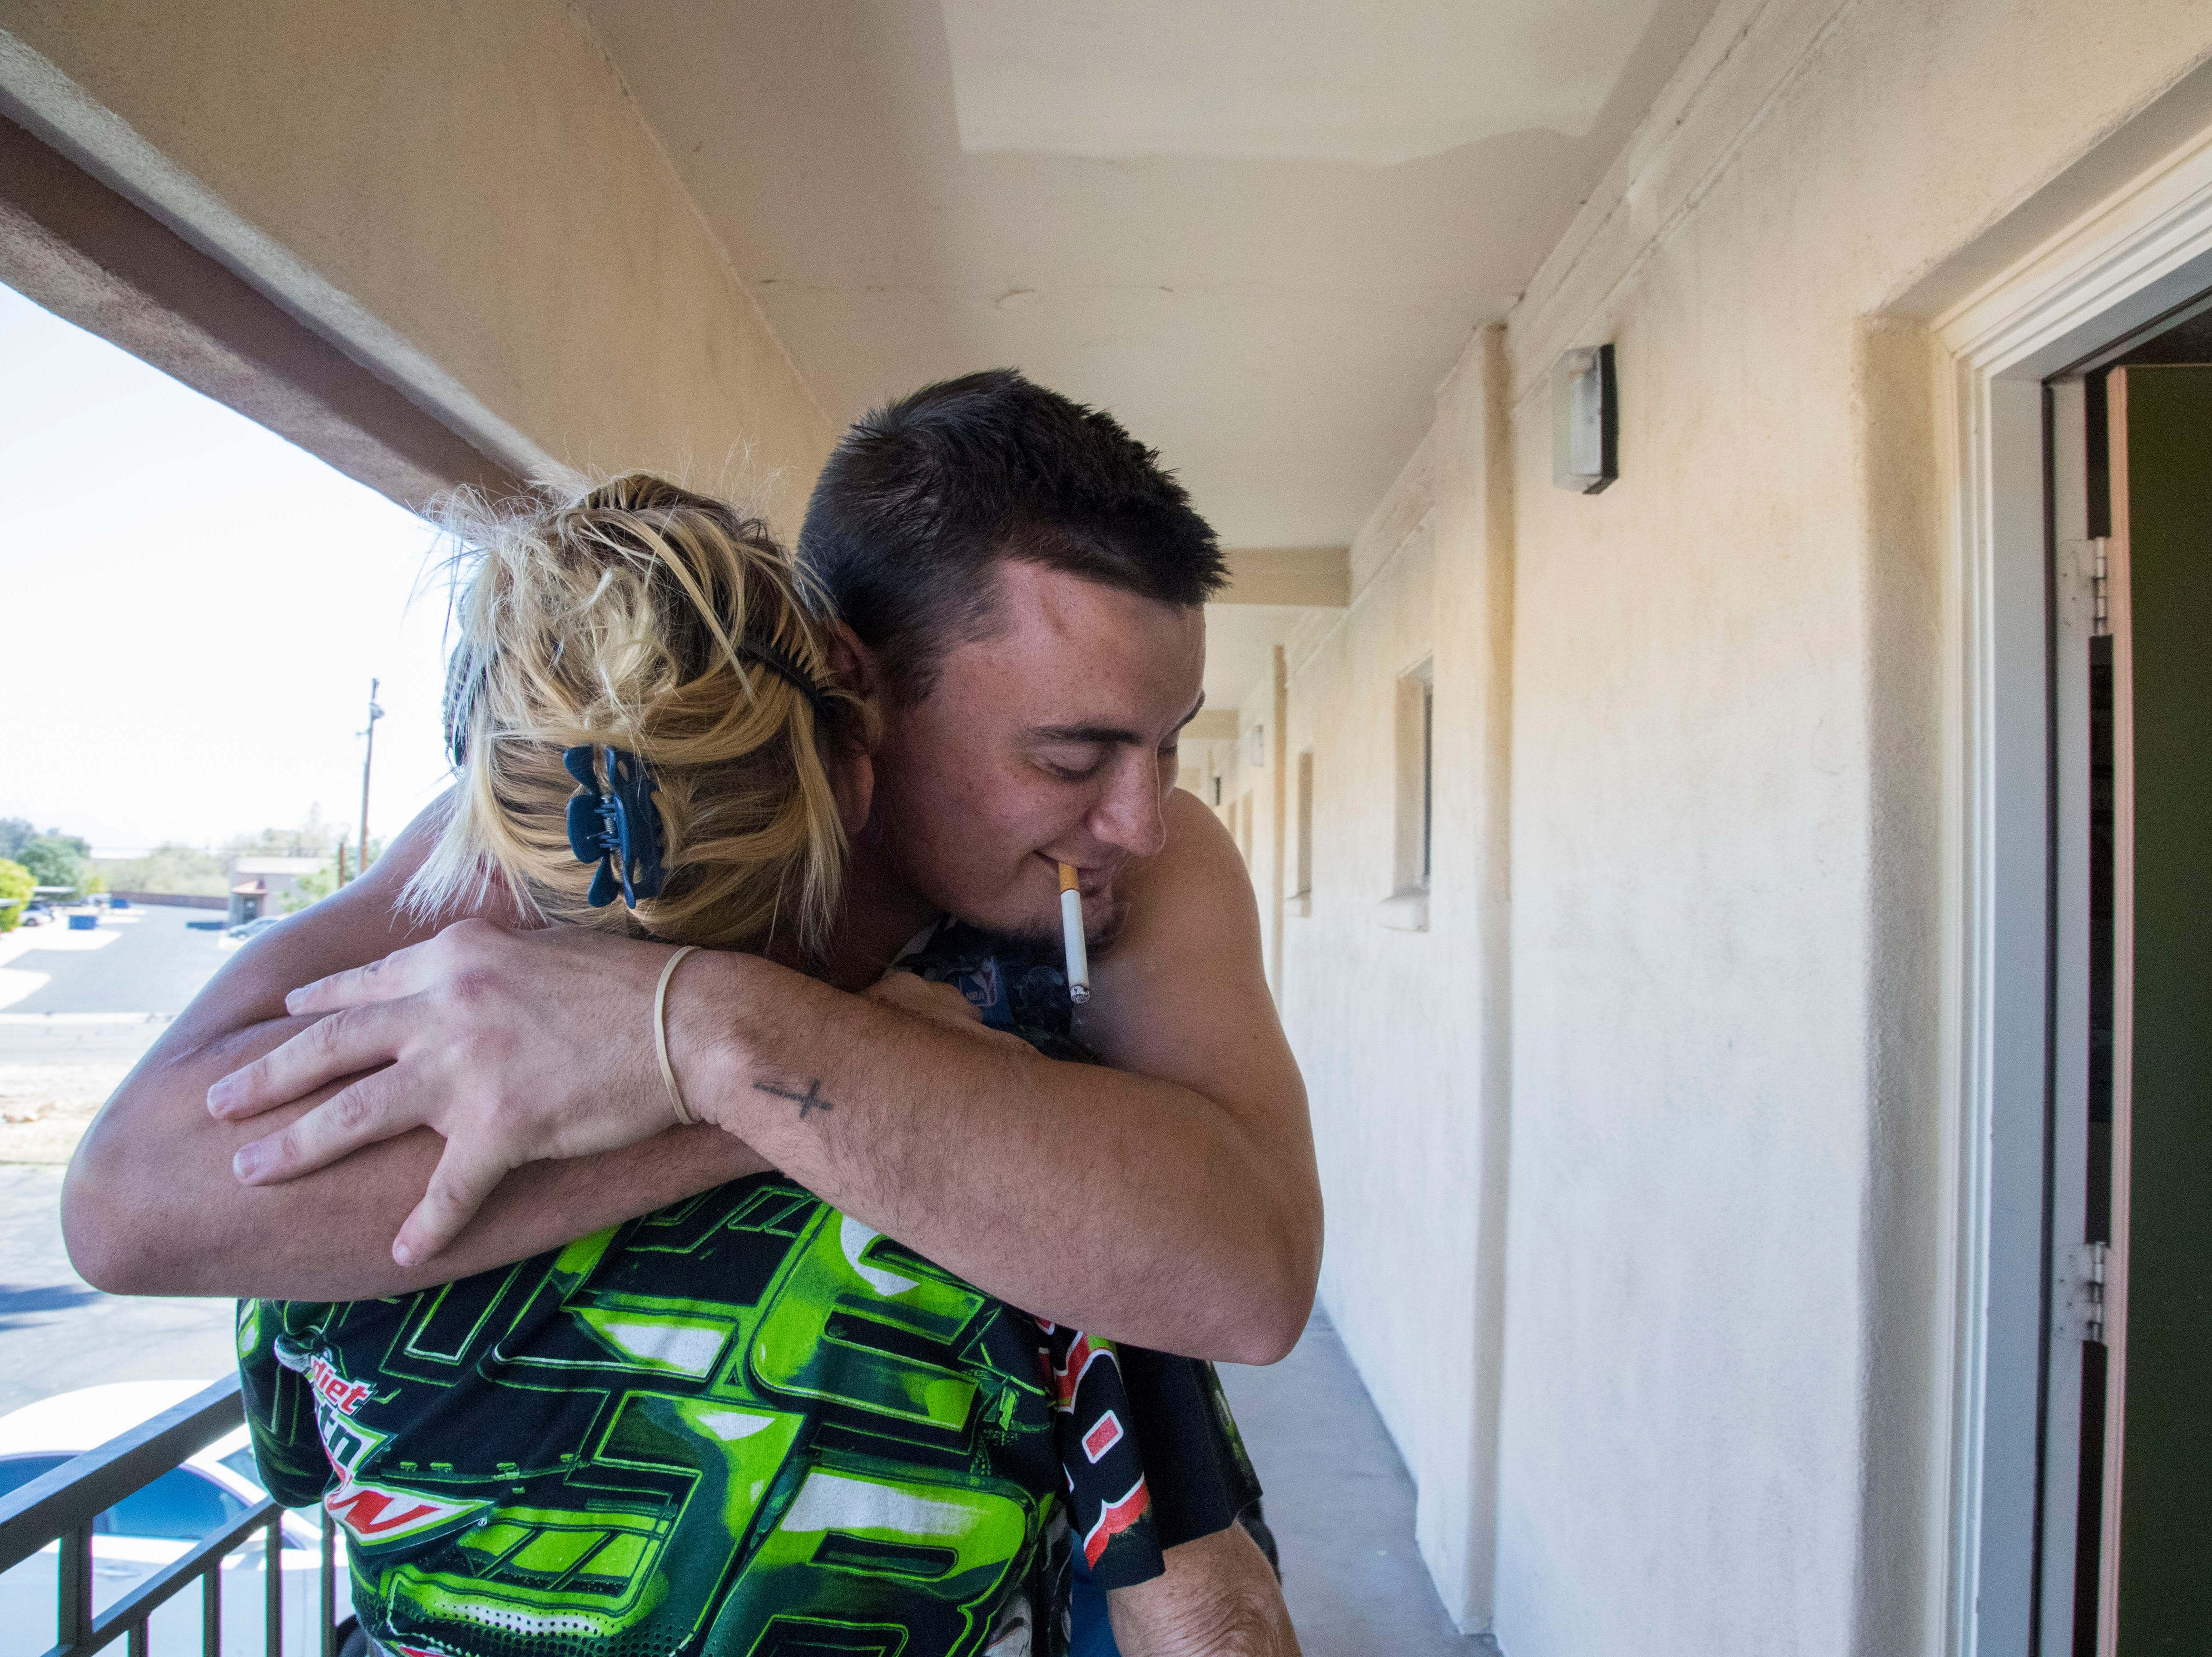 """Cody Ramos hugs his mom, Lana Long, at the Mesa motel he shares with her, his father and younger brother. Even though things remained difficult, Ramos tried to stay optimistic. """"Me making my mom happy overcomes all of that. There's so much I can be doing."""""""